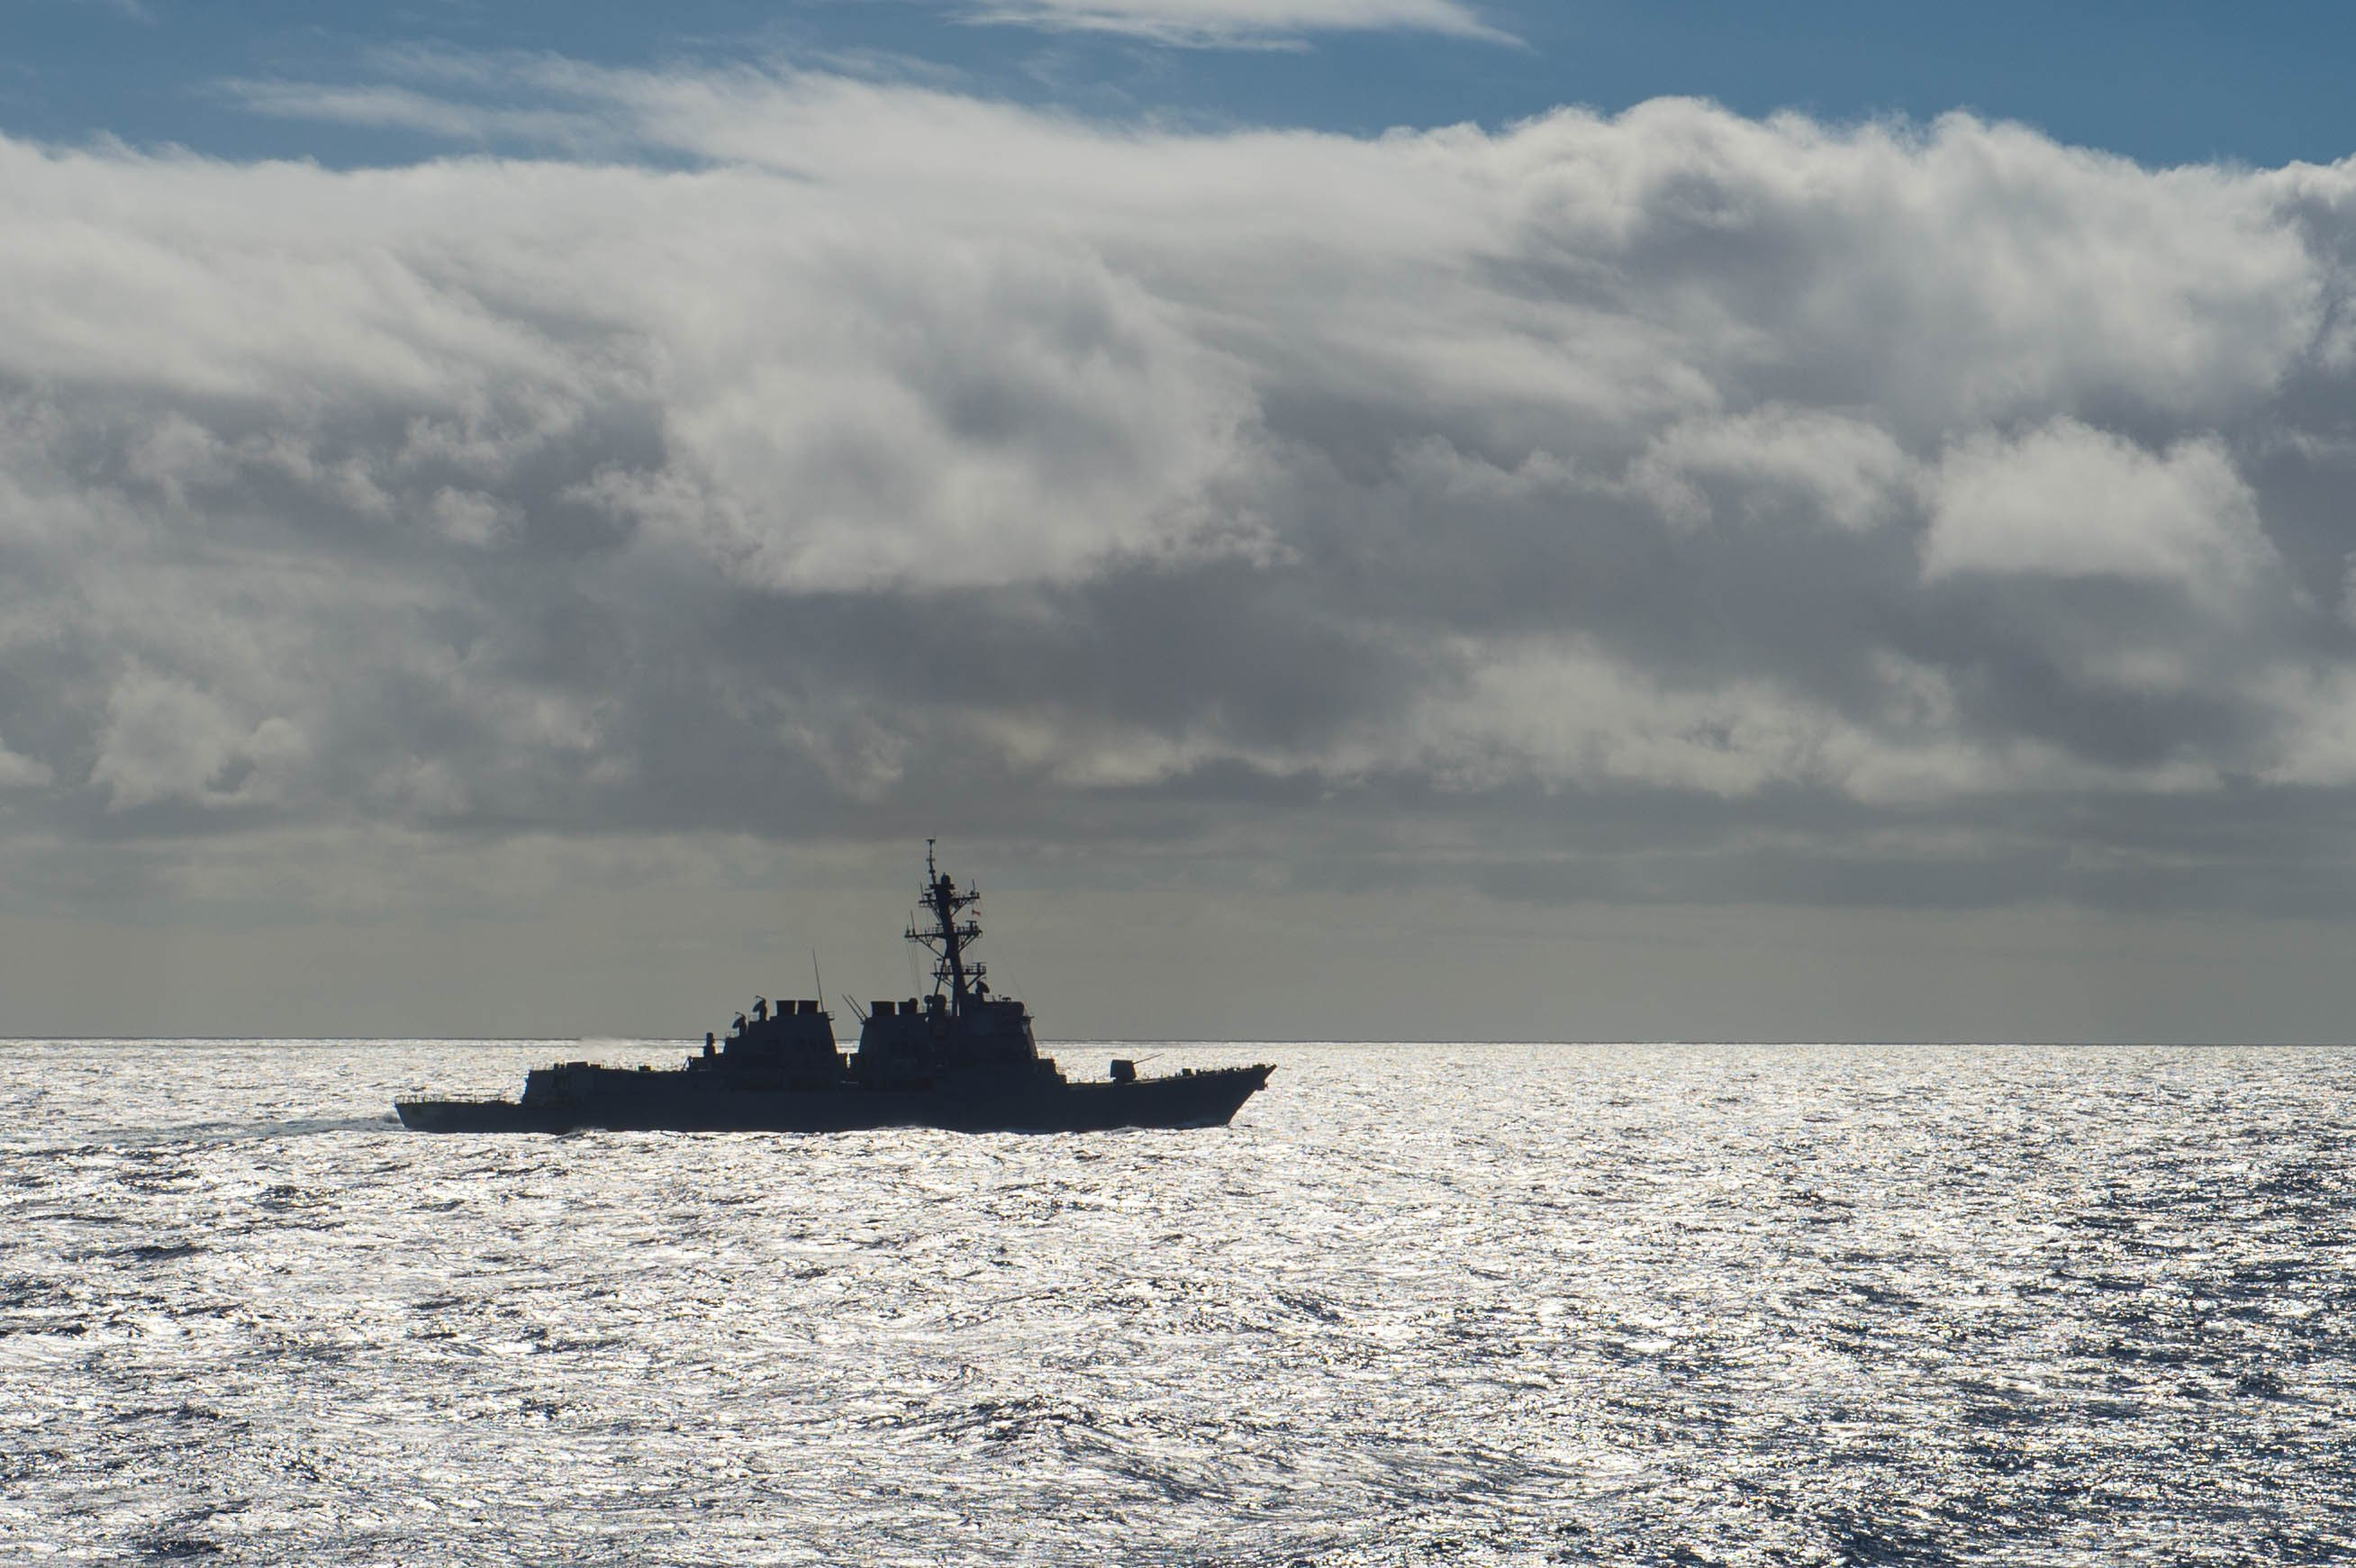 Arleigh Burke-class guided-missile destroyer USS McCampbell (DDG-85) transits waters near Guam on Jan. 21, 2016. US Navy Photo